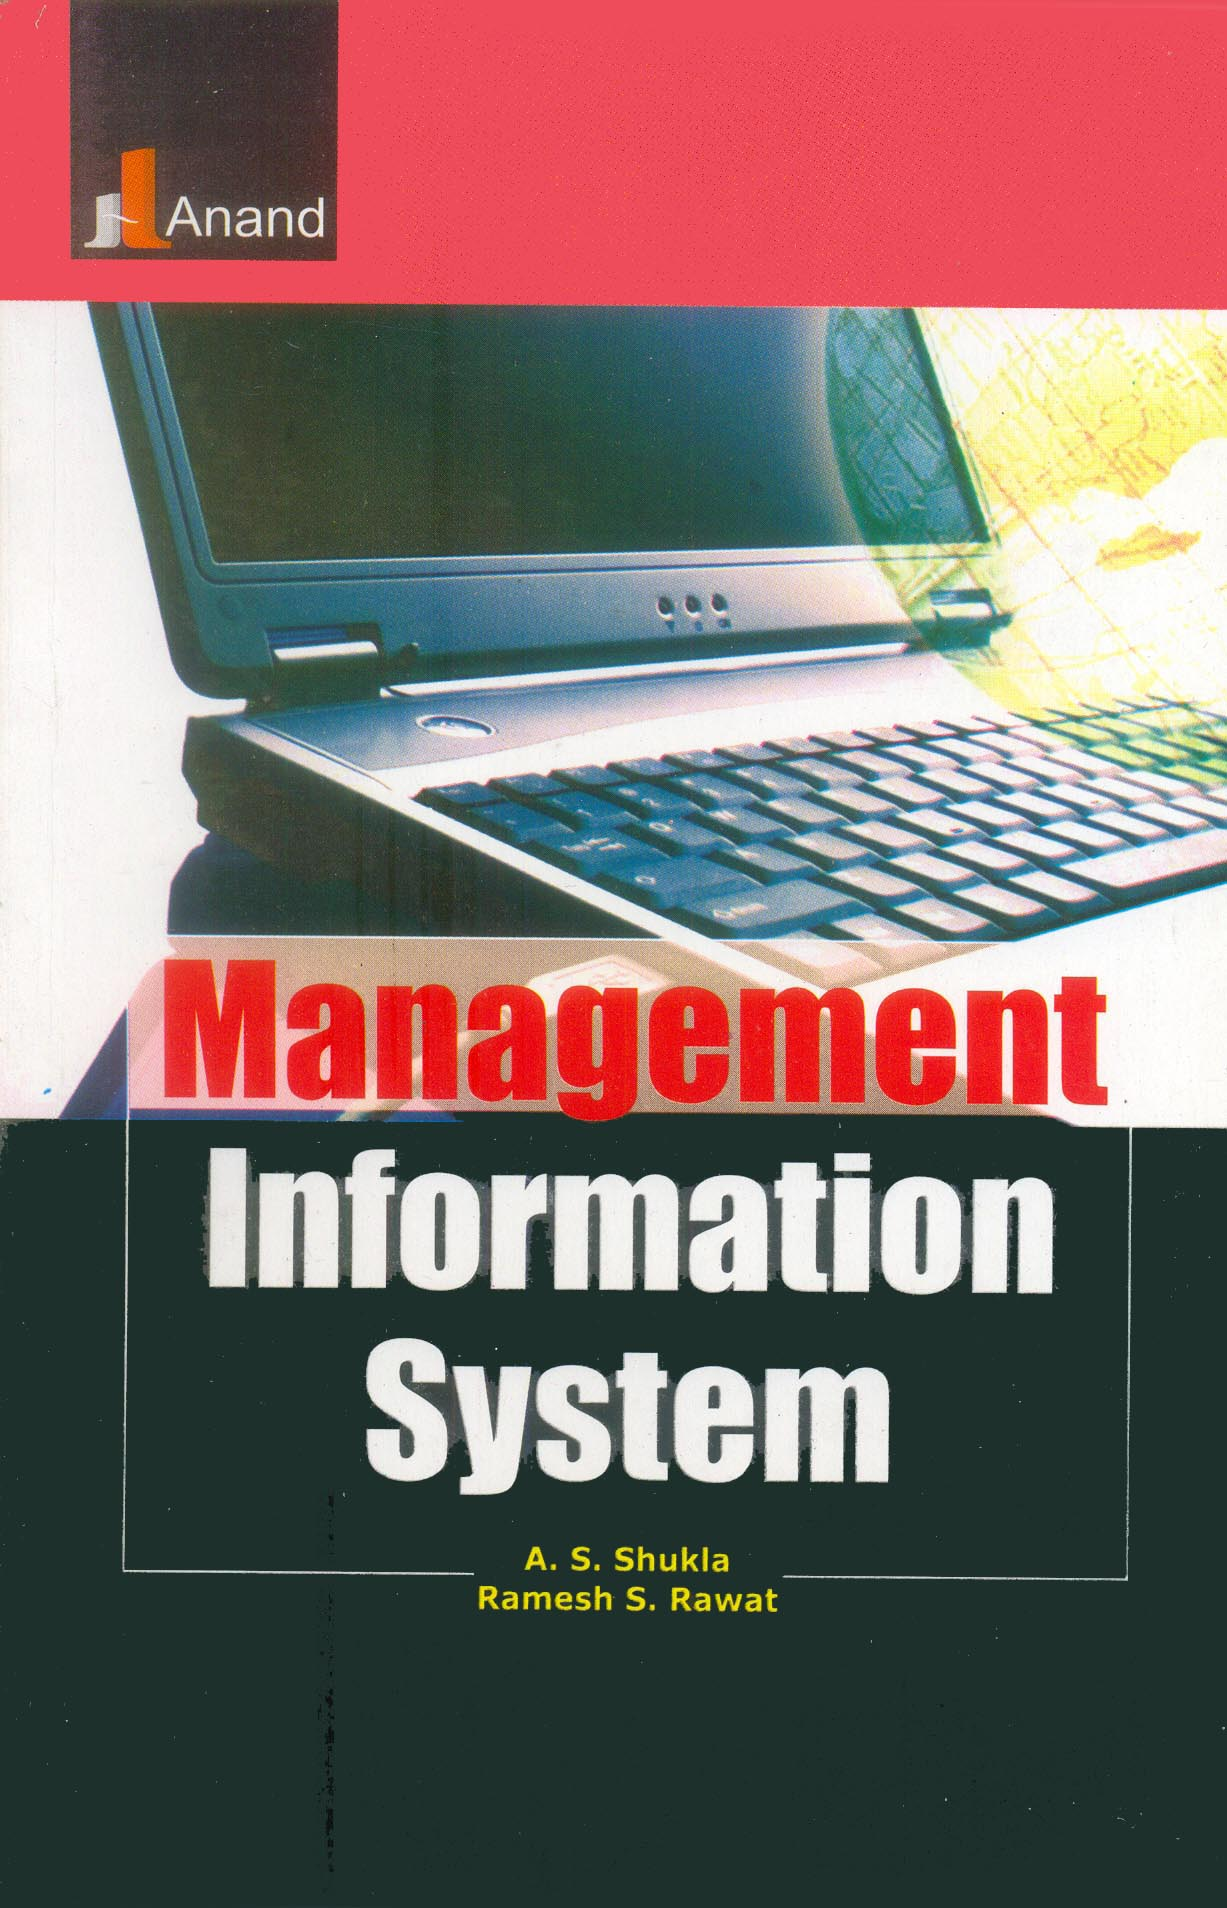 403 MANAGEMENT INFORMATION SYSTEM